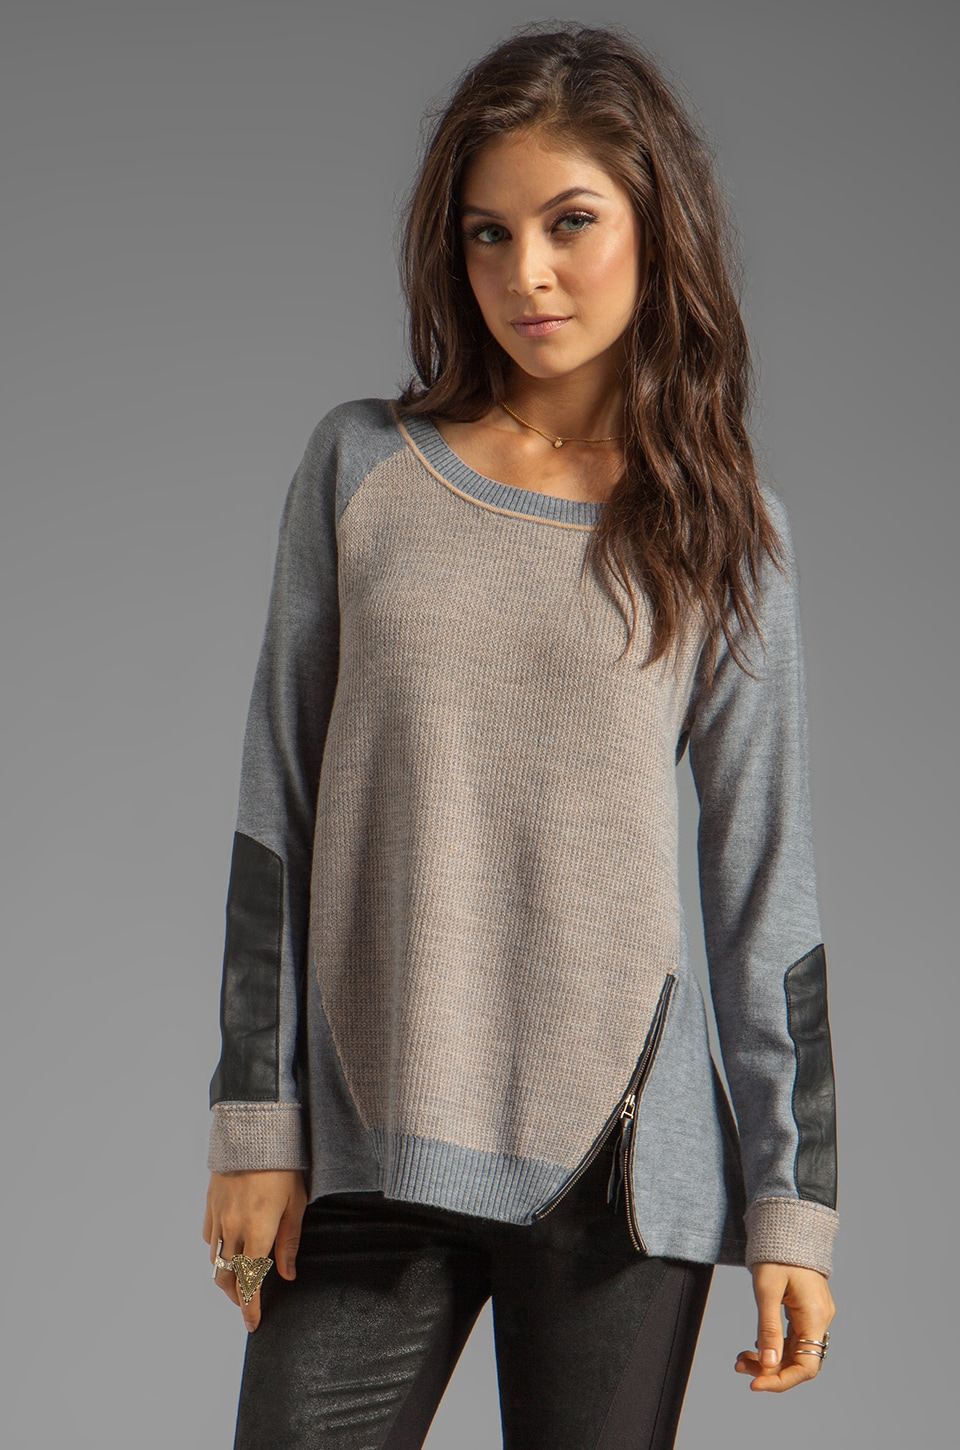 Nanette Lepore Medina Knit Taza Sweater in Pebble/Camel